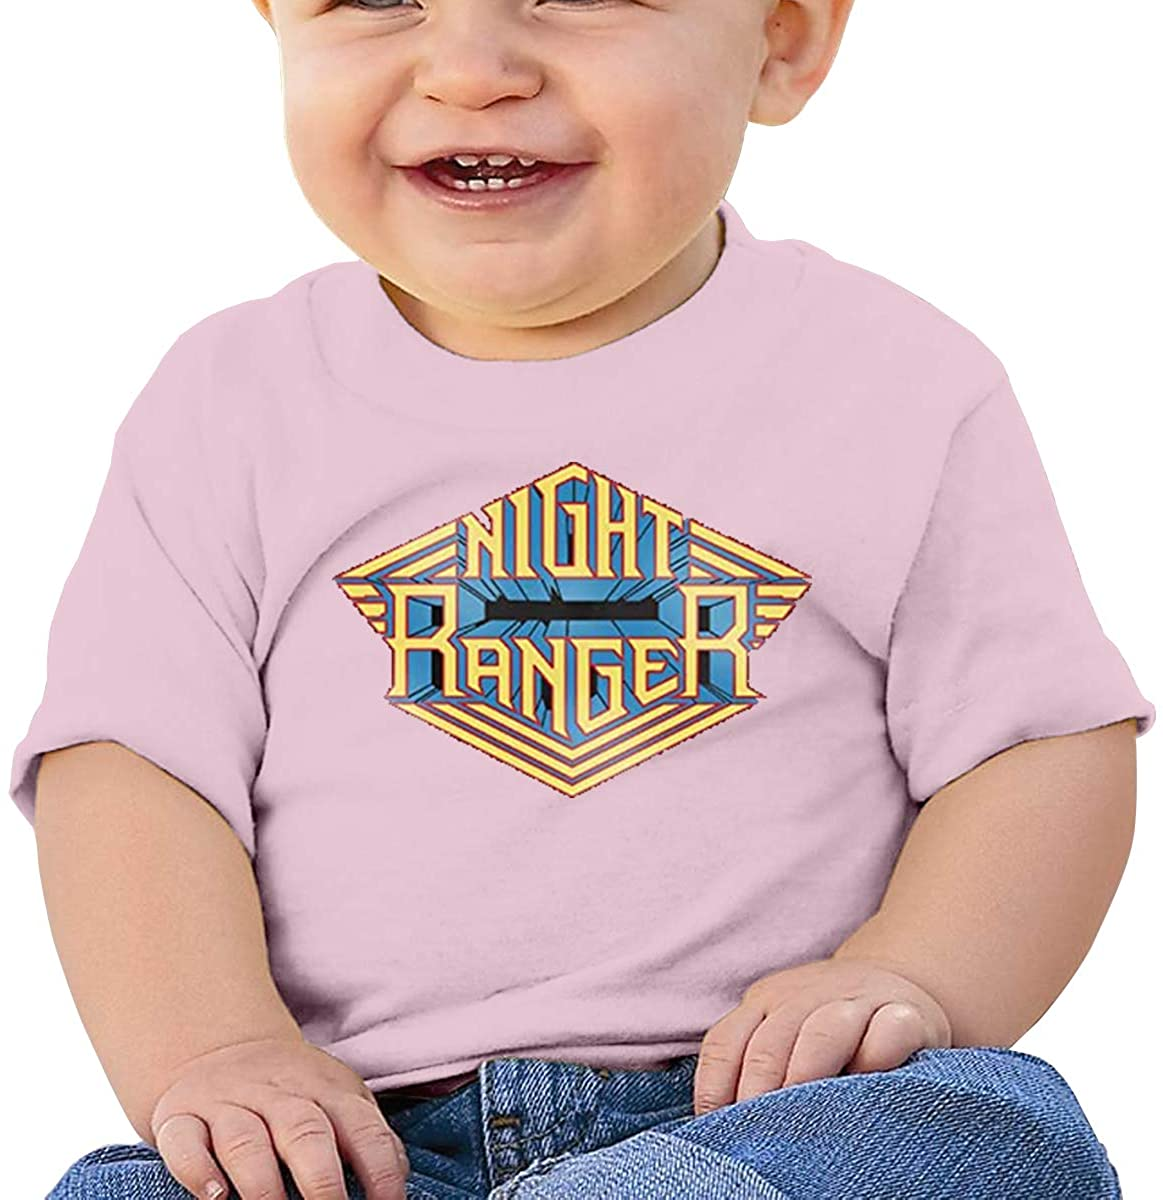 6-24 Months Boy and Girl Baby Short Sleeve T-Shirt Night Ranger Original Minimalist Style Pink